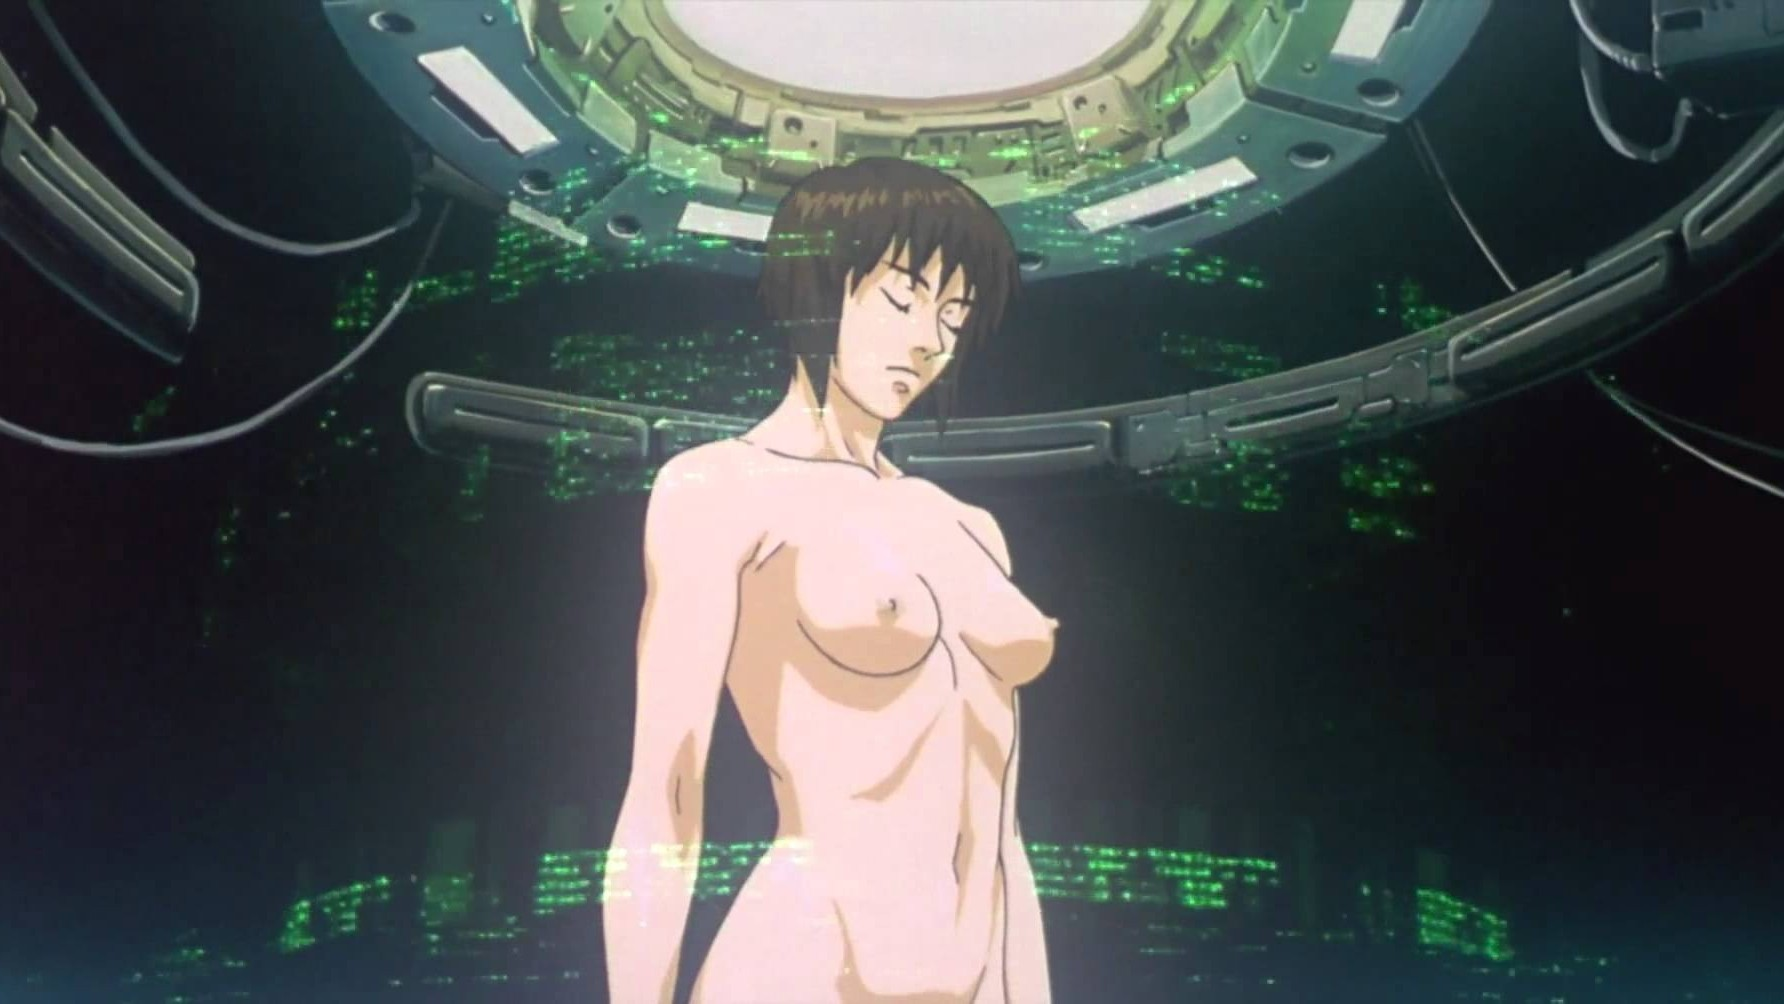 порно ghost in the shell № 381493 без смс